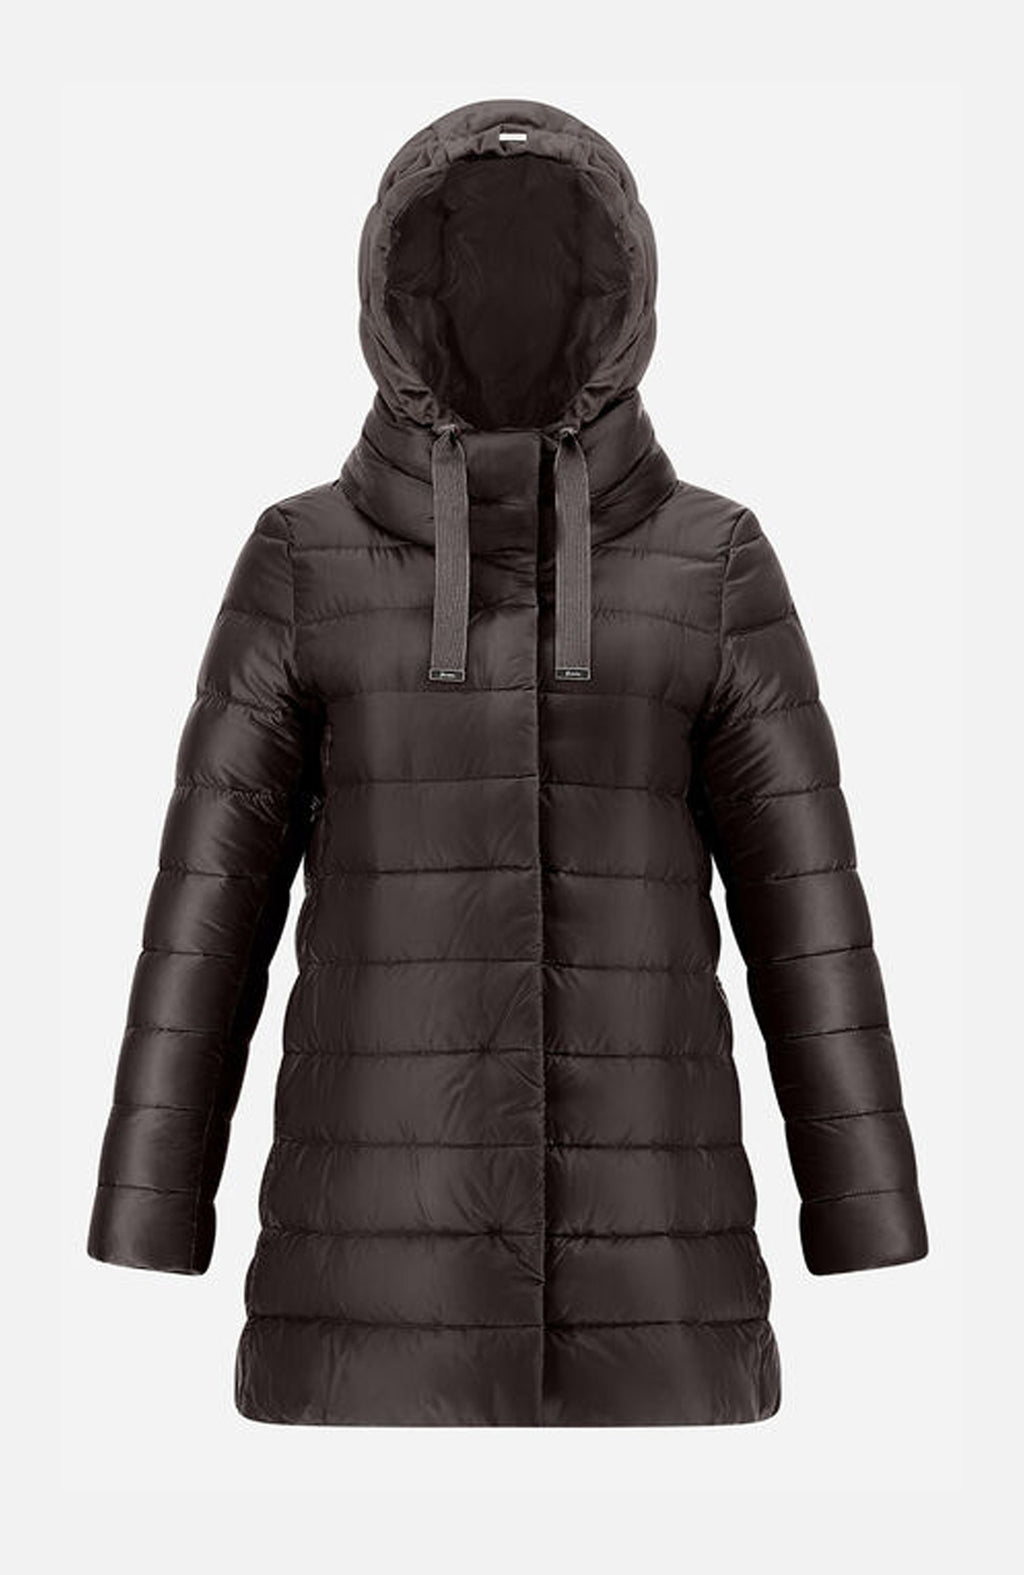 Herno Chocolate Ultralight A-Shape Puffer Jacket